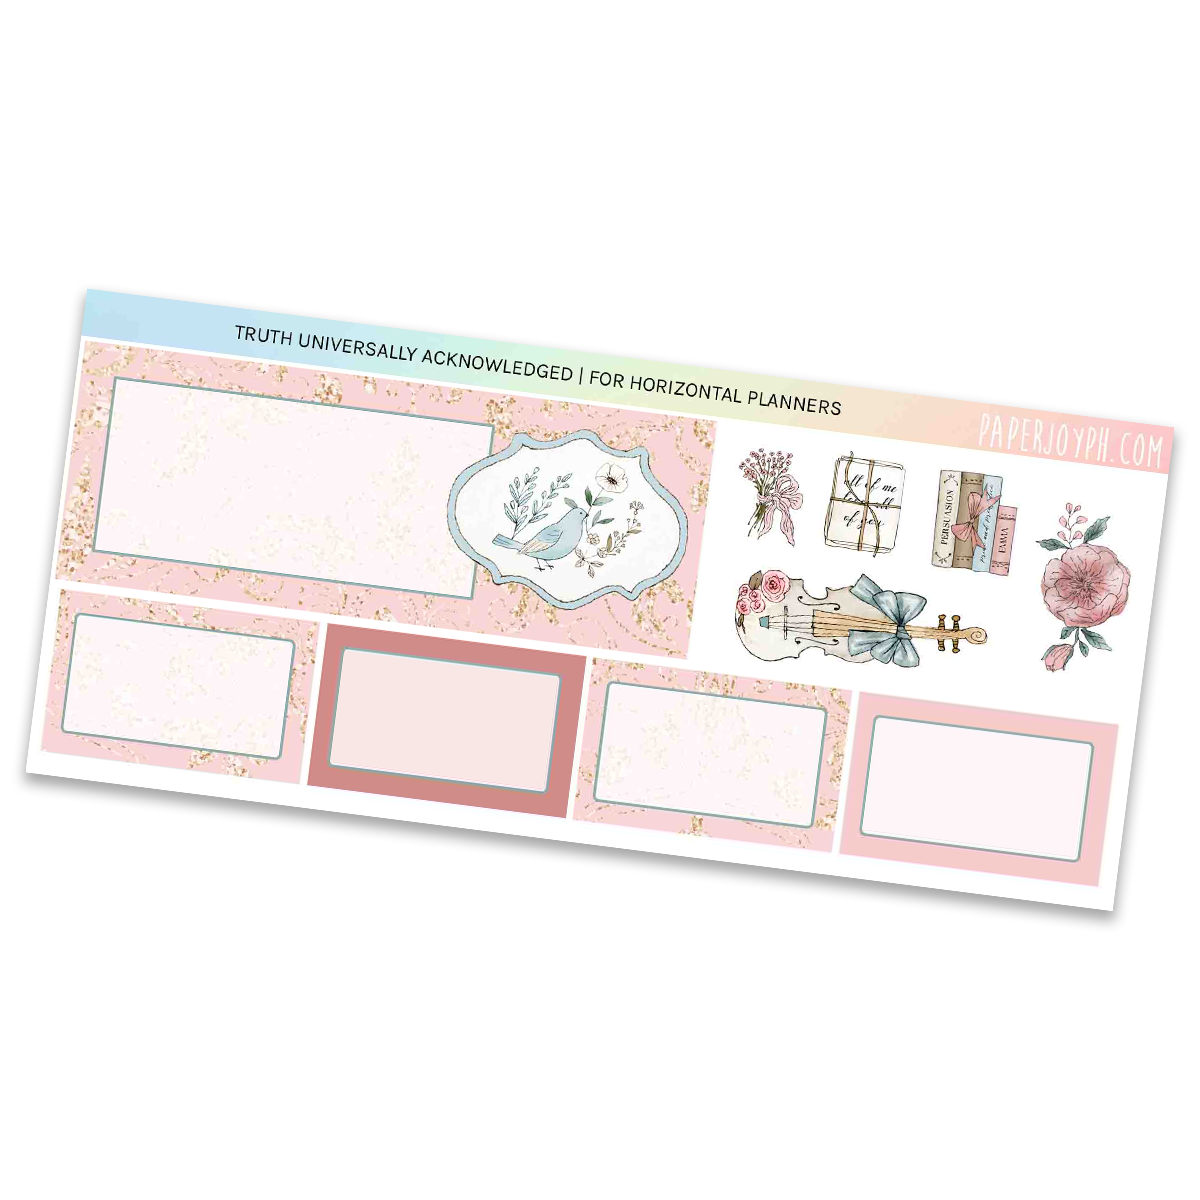 HORIZONTAL PLANNER STICKER KIT | Truth Universally Acknowledged